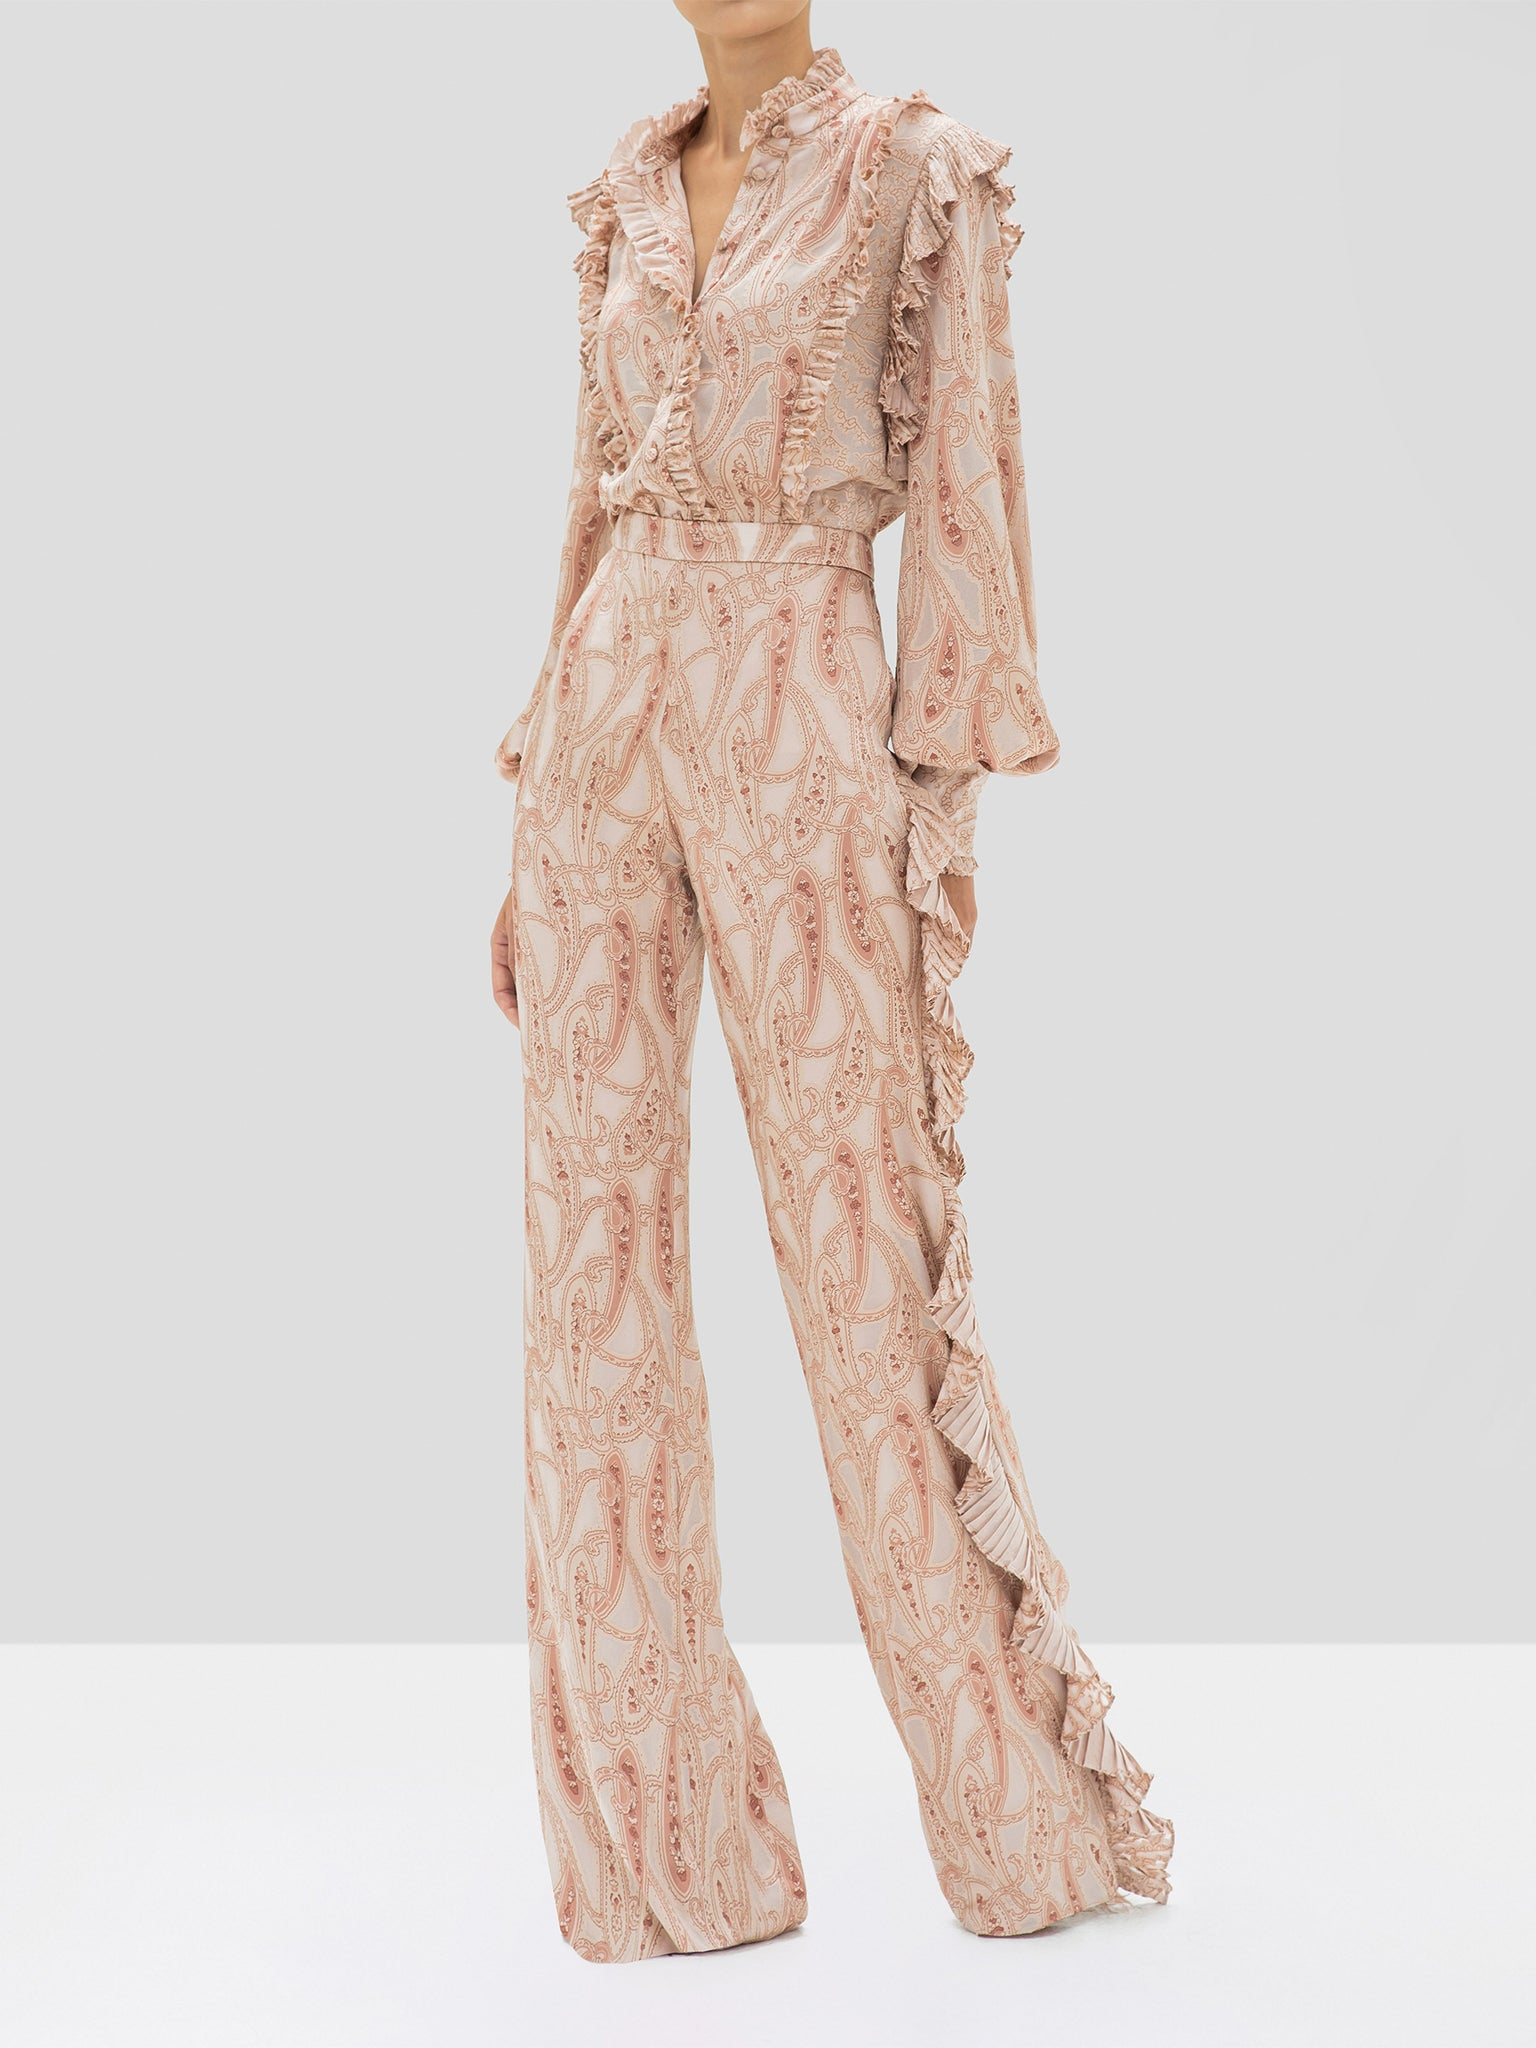 Alexis Eline Top and Izami Pant in Blush Paisley from the Holiday 2019 Ready To Wear Collection